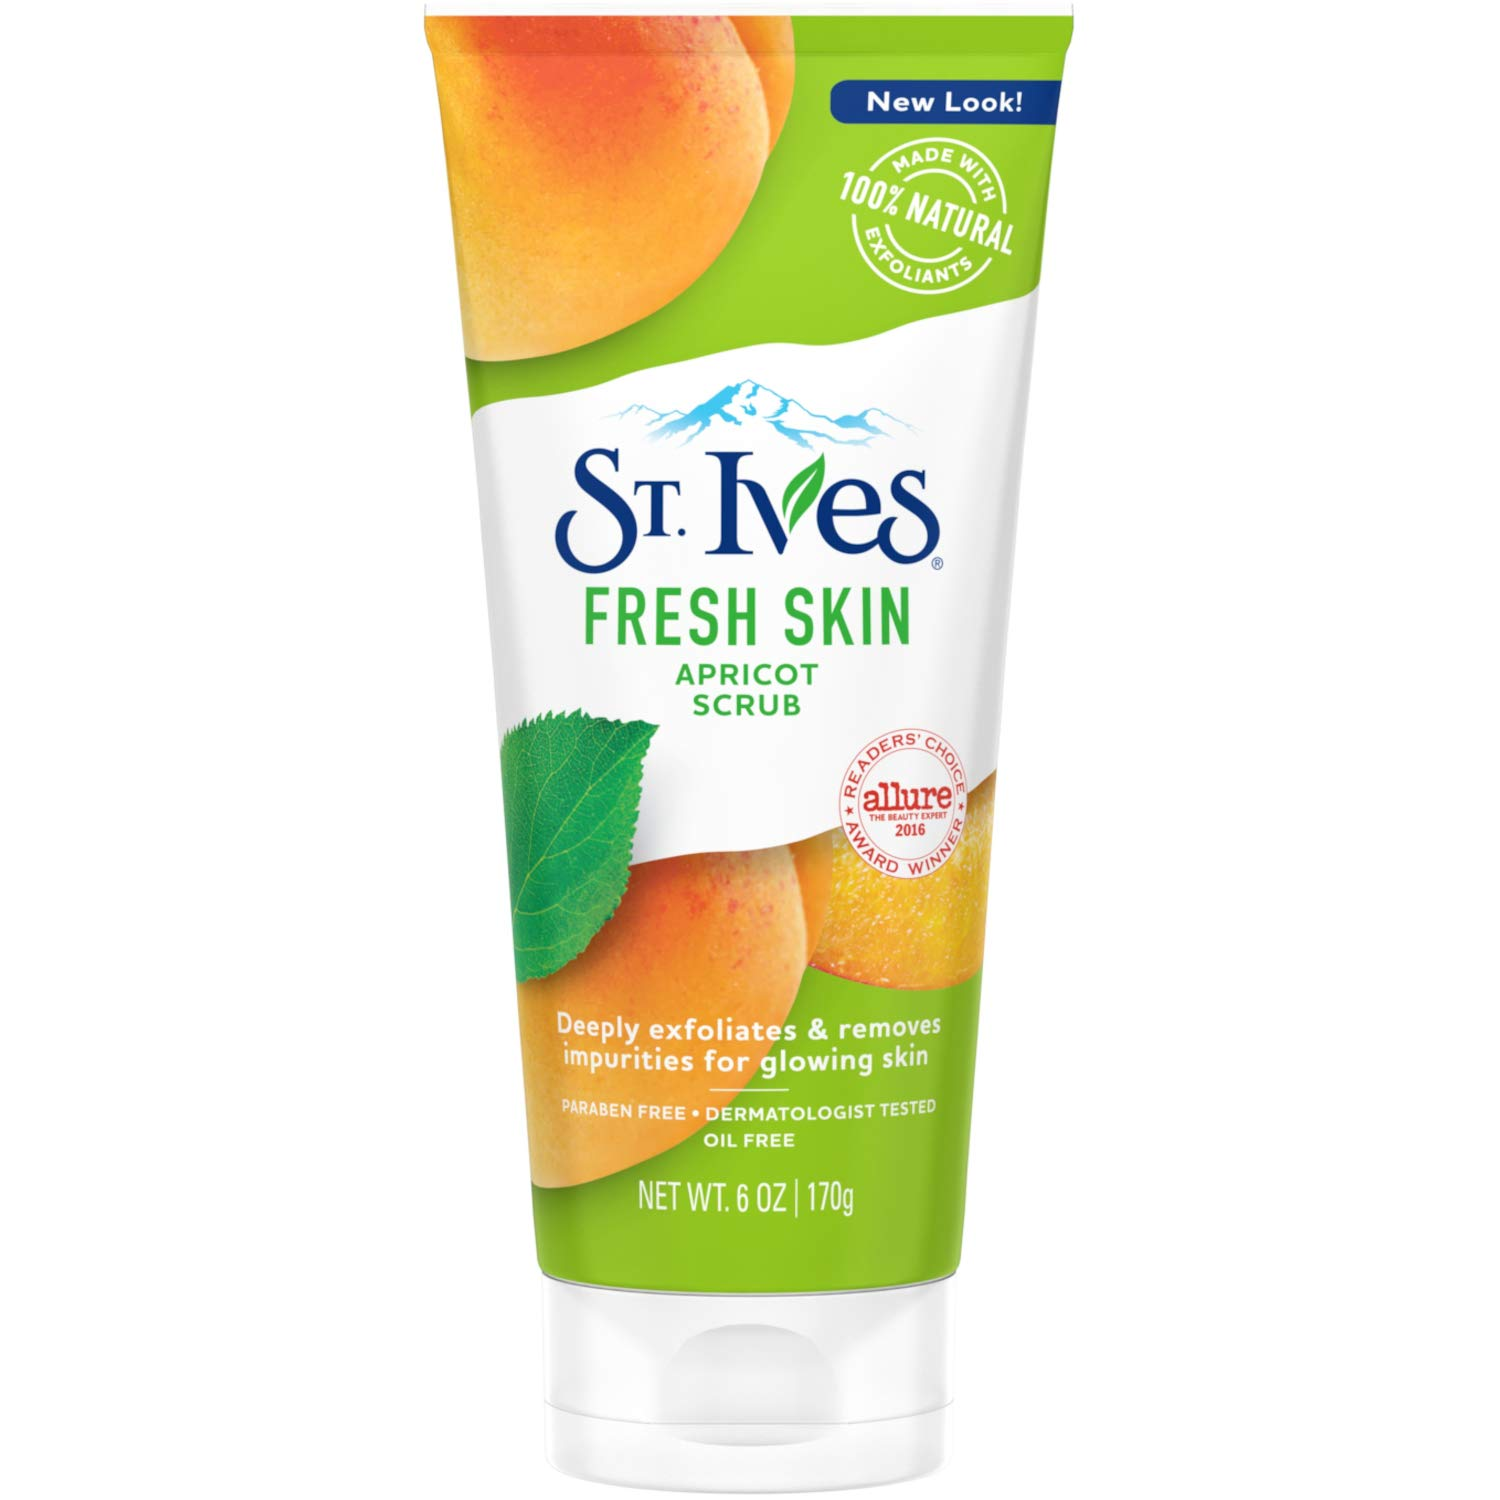 St. Ives Face Scrub Apricot 6 oz (Pack of 2)